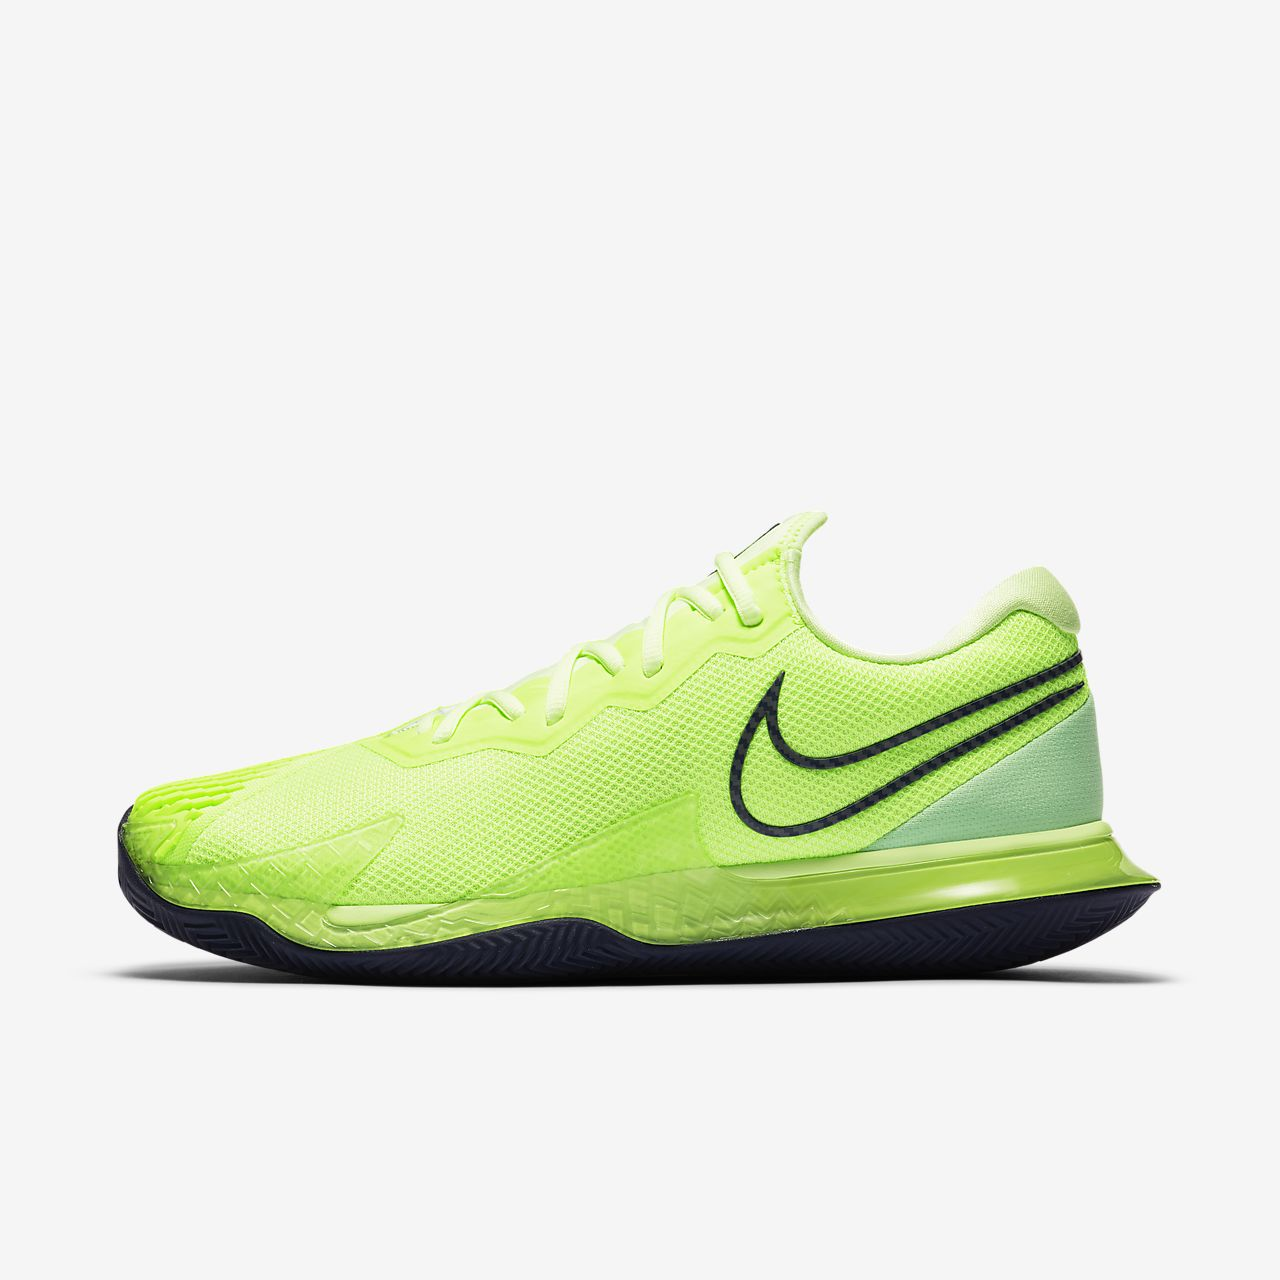 NikeCourt Air Zoom Vapor Cage 4 Tennisschoen voor heren (gravel)